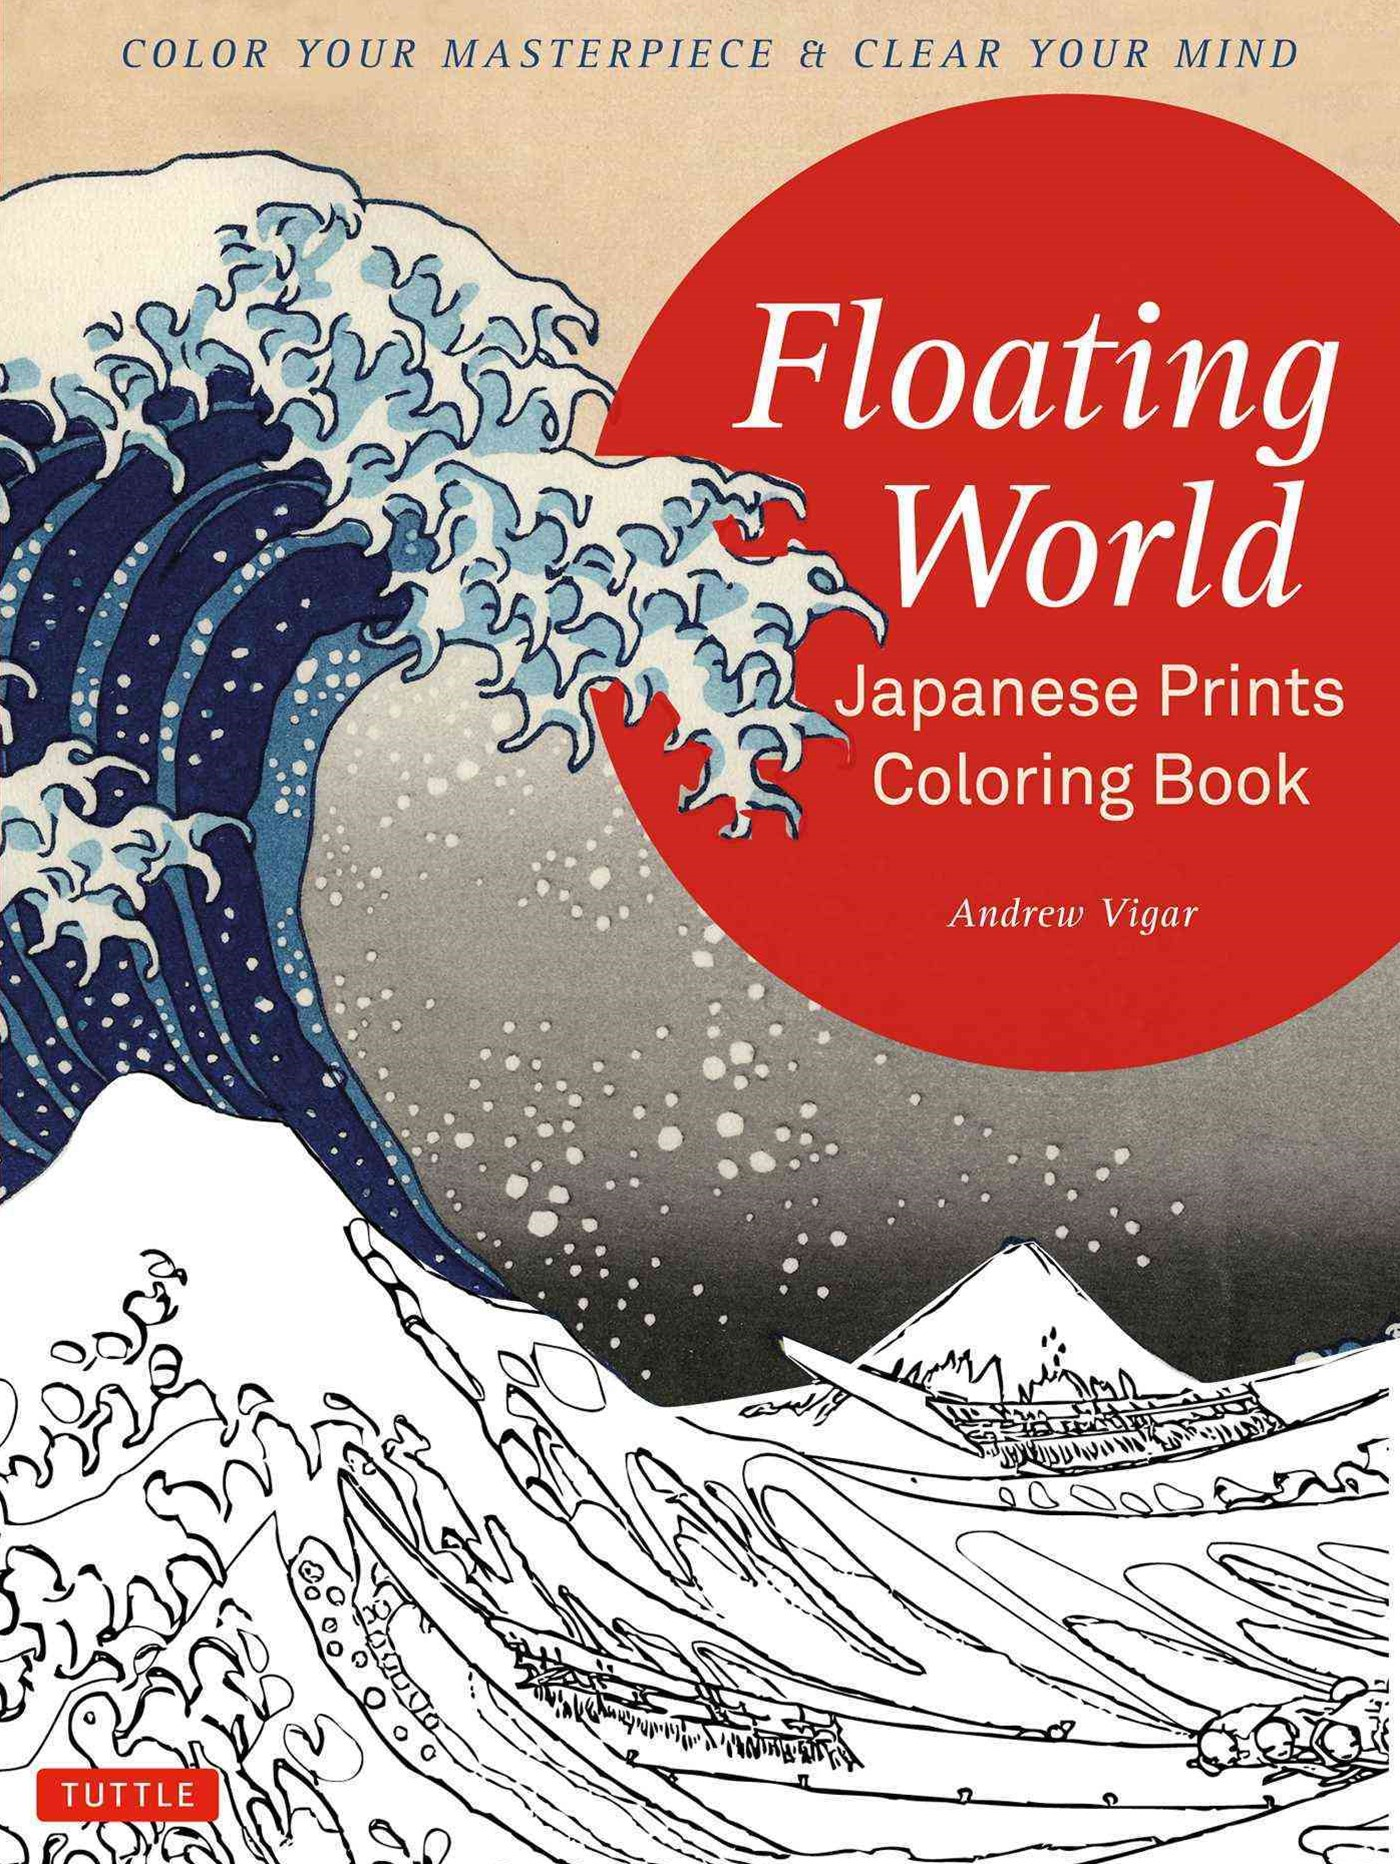 Floating World Japanese Prints Colouring Book